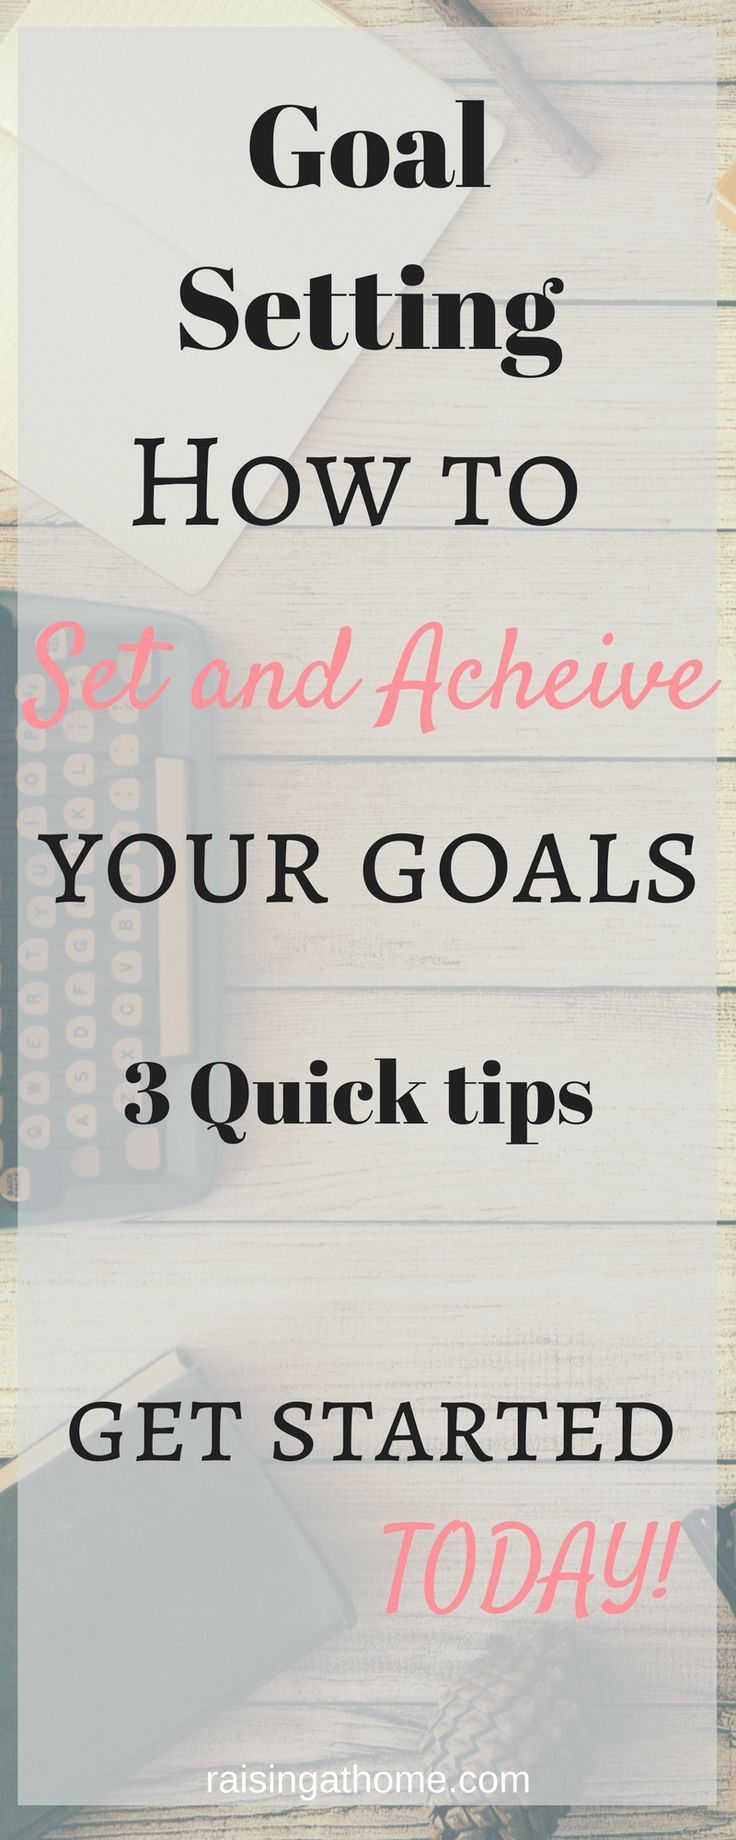 Goal Setting, How to Set and Achieve Your Goals, 3 Simple